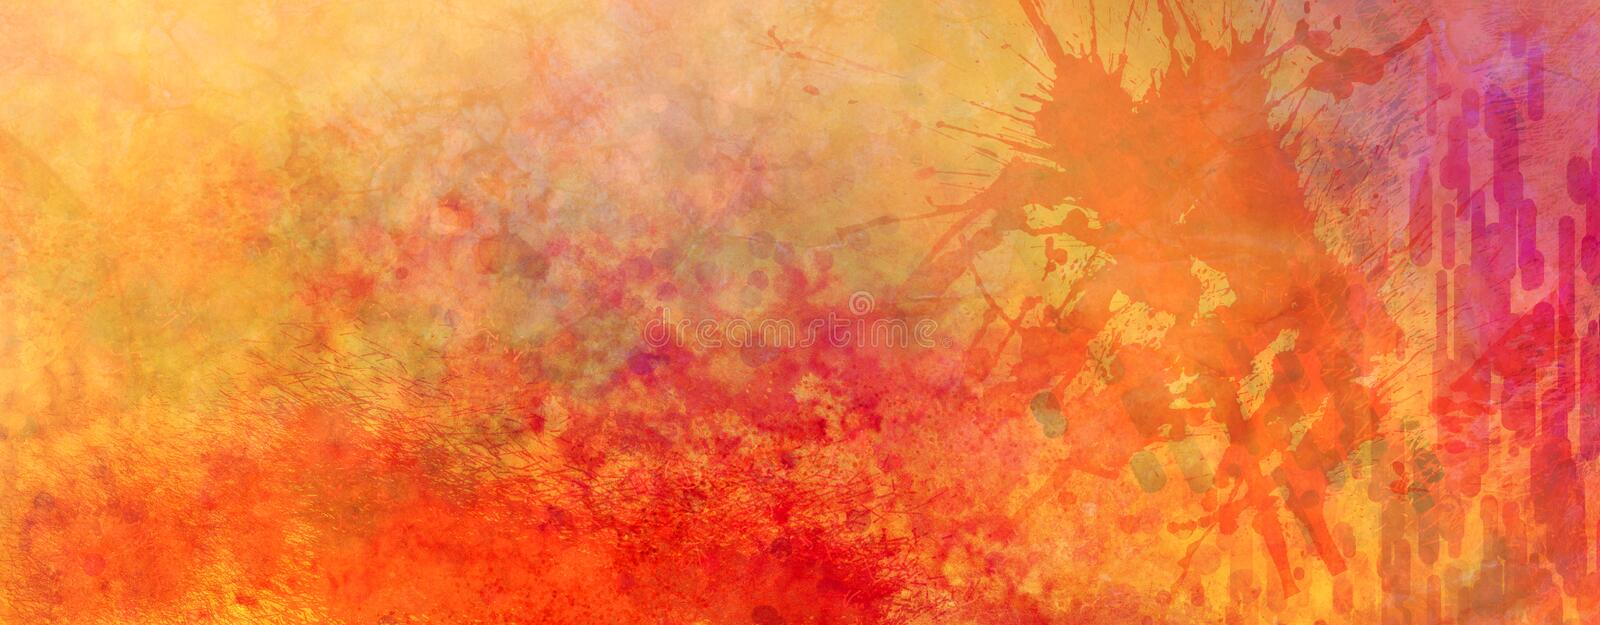 Colorful abstract background with paint spatter and grunge texture, bright orange red yellow and purple pink colors with lots of g vector illustration